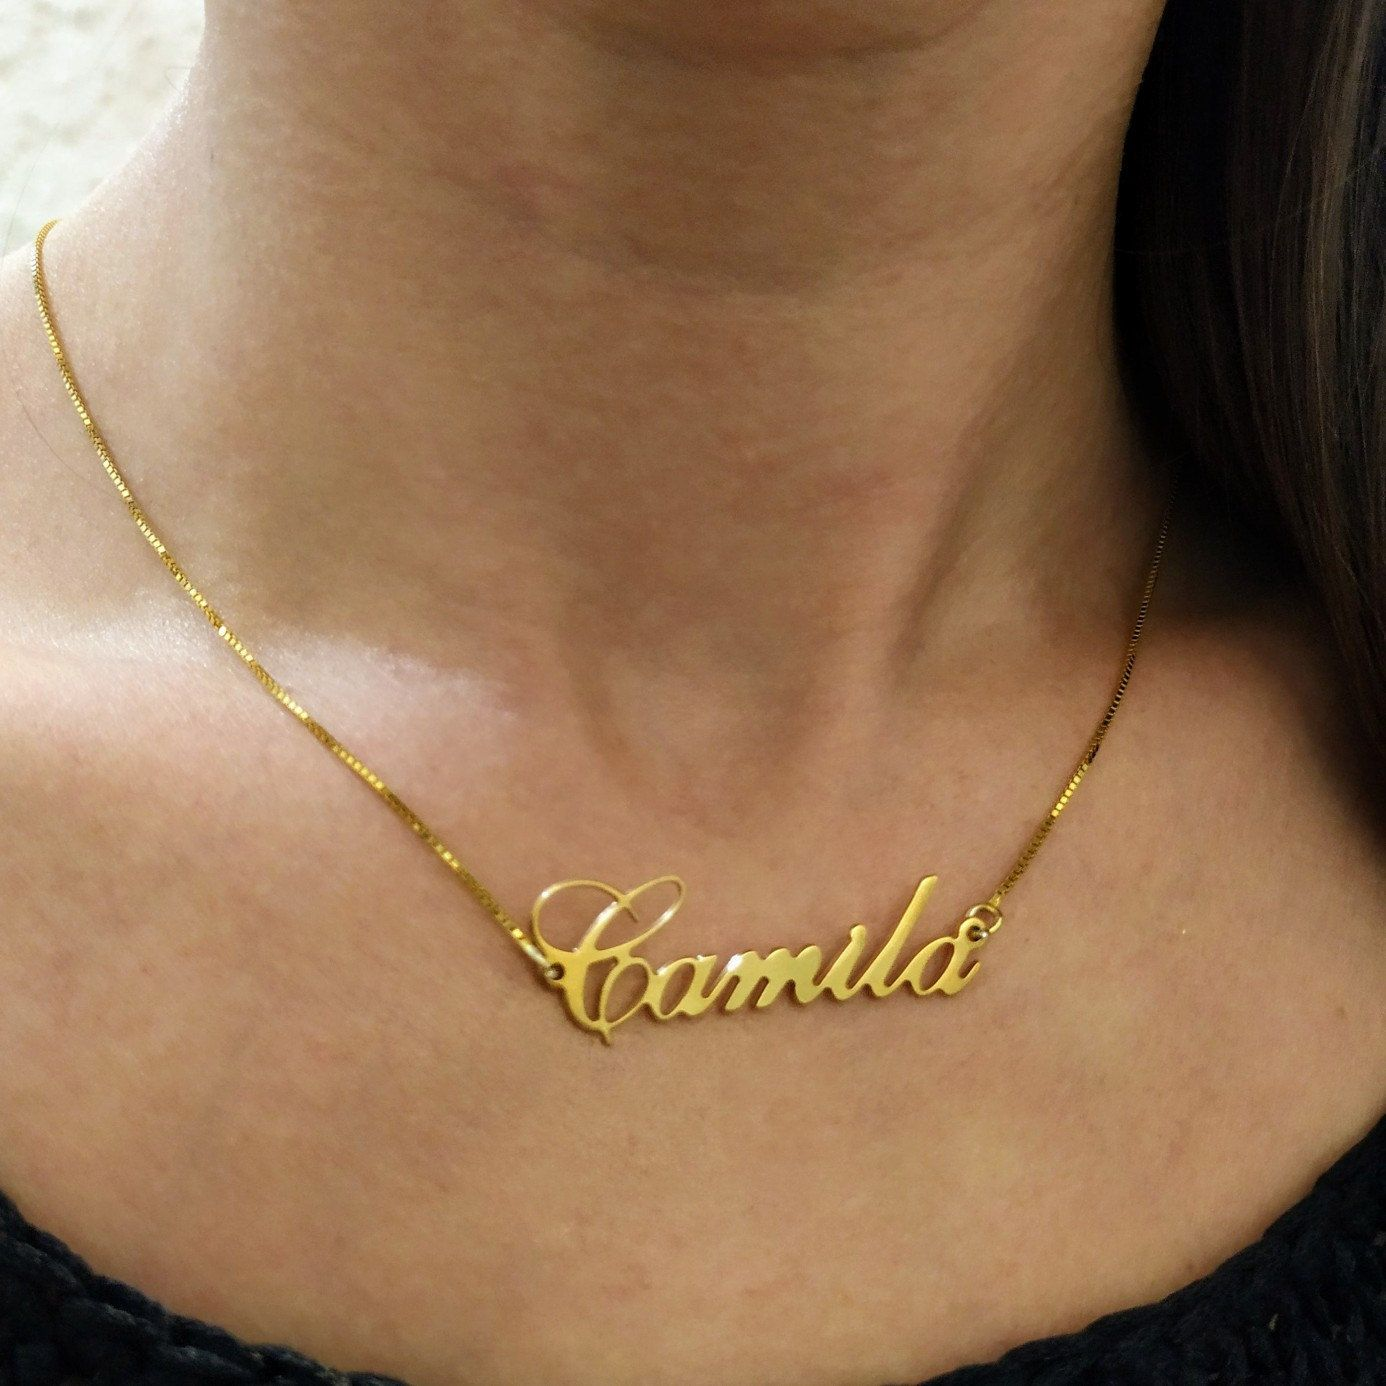 Personalised Name Necklace Gold Plated on Silver Carrie Style with Crystal Unique Gift Idea for Daughter Sister Wife for Her ANY NAME